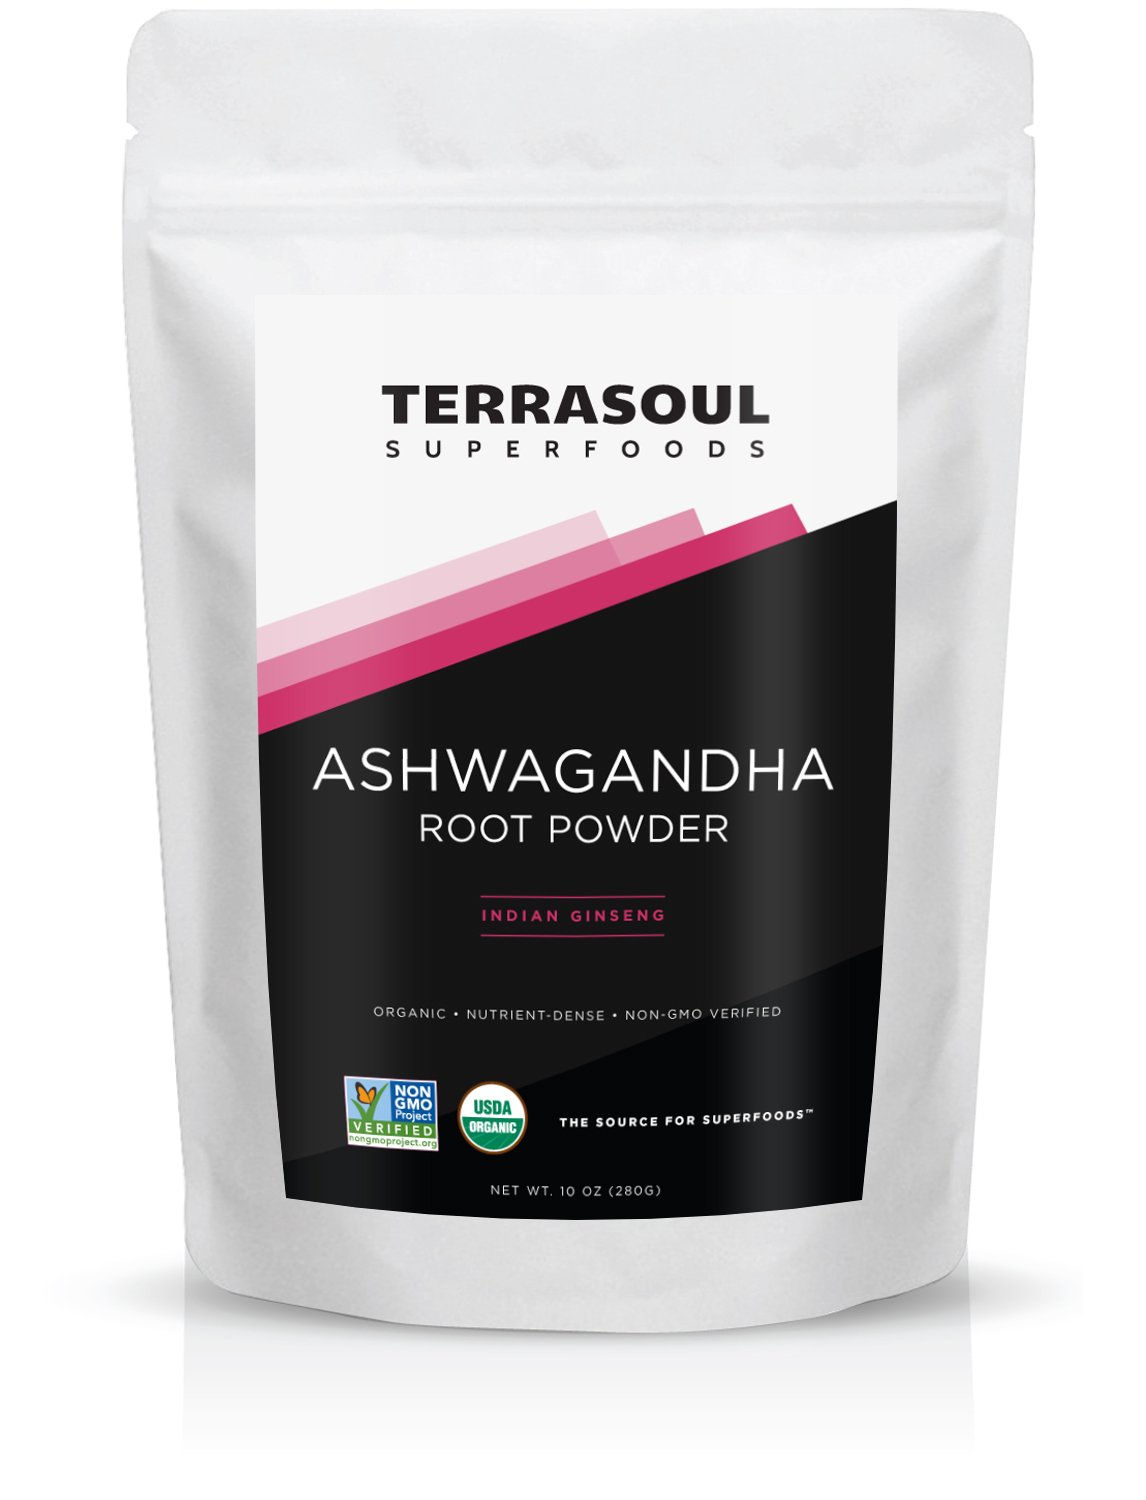 Terrasoul Superfoods Ashwagandha Root Powder (Organic), 10-ounce